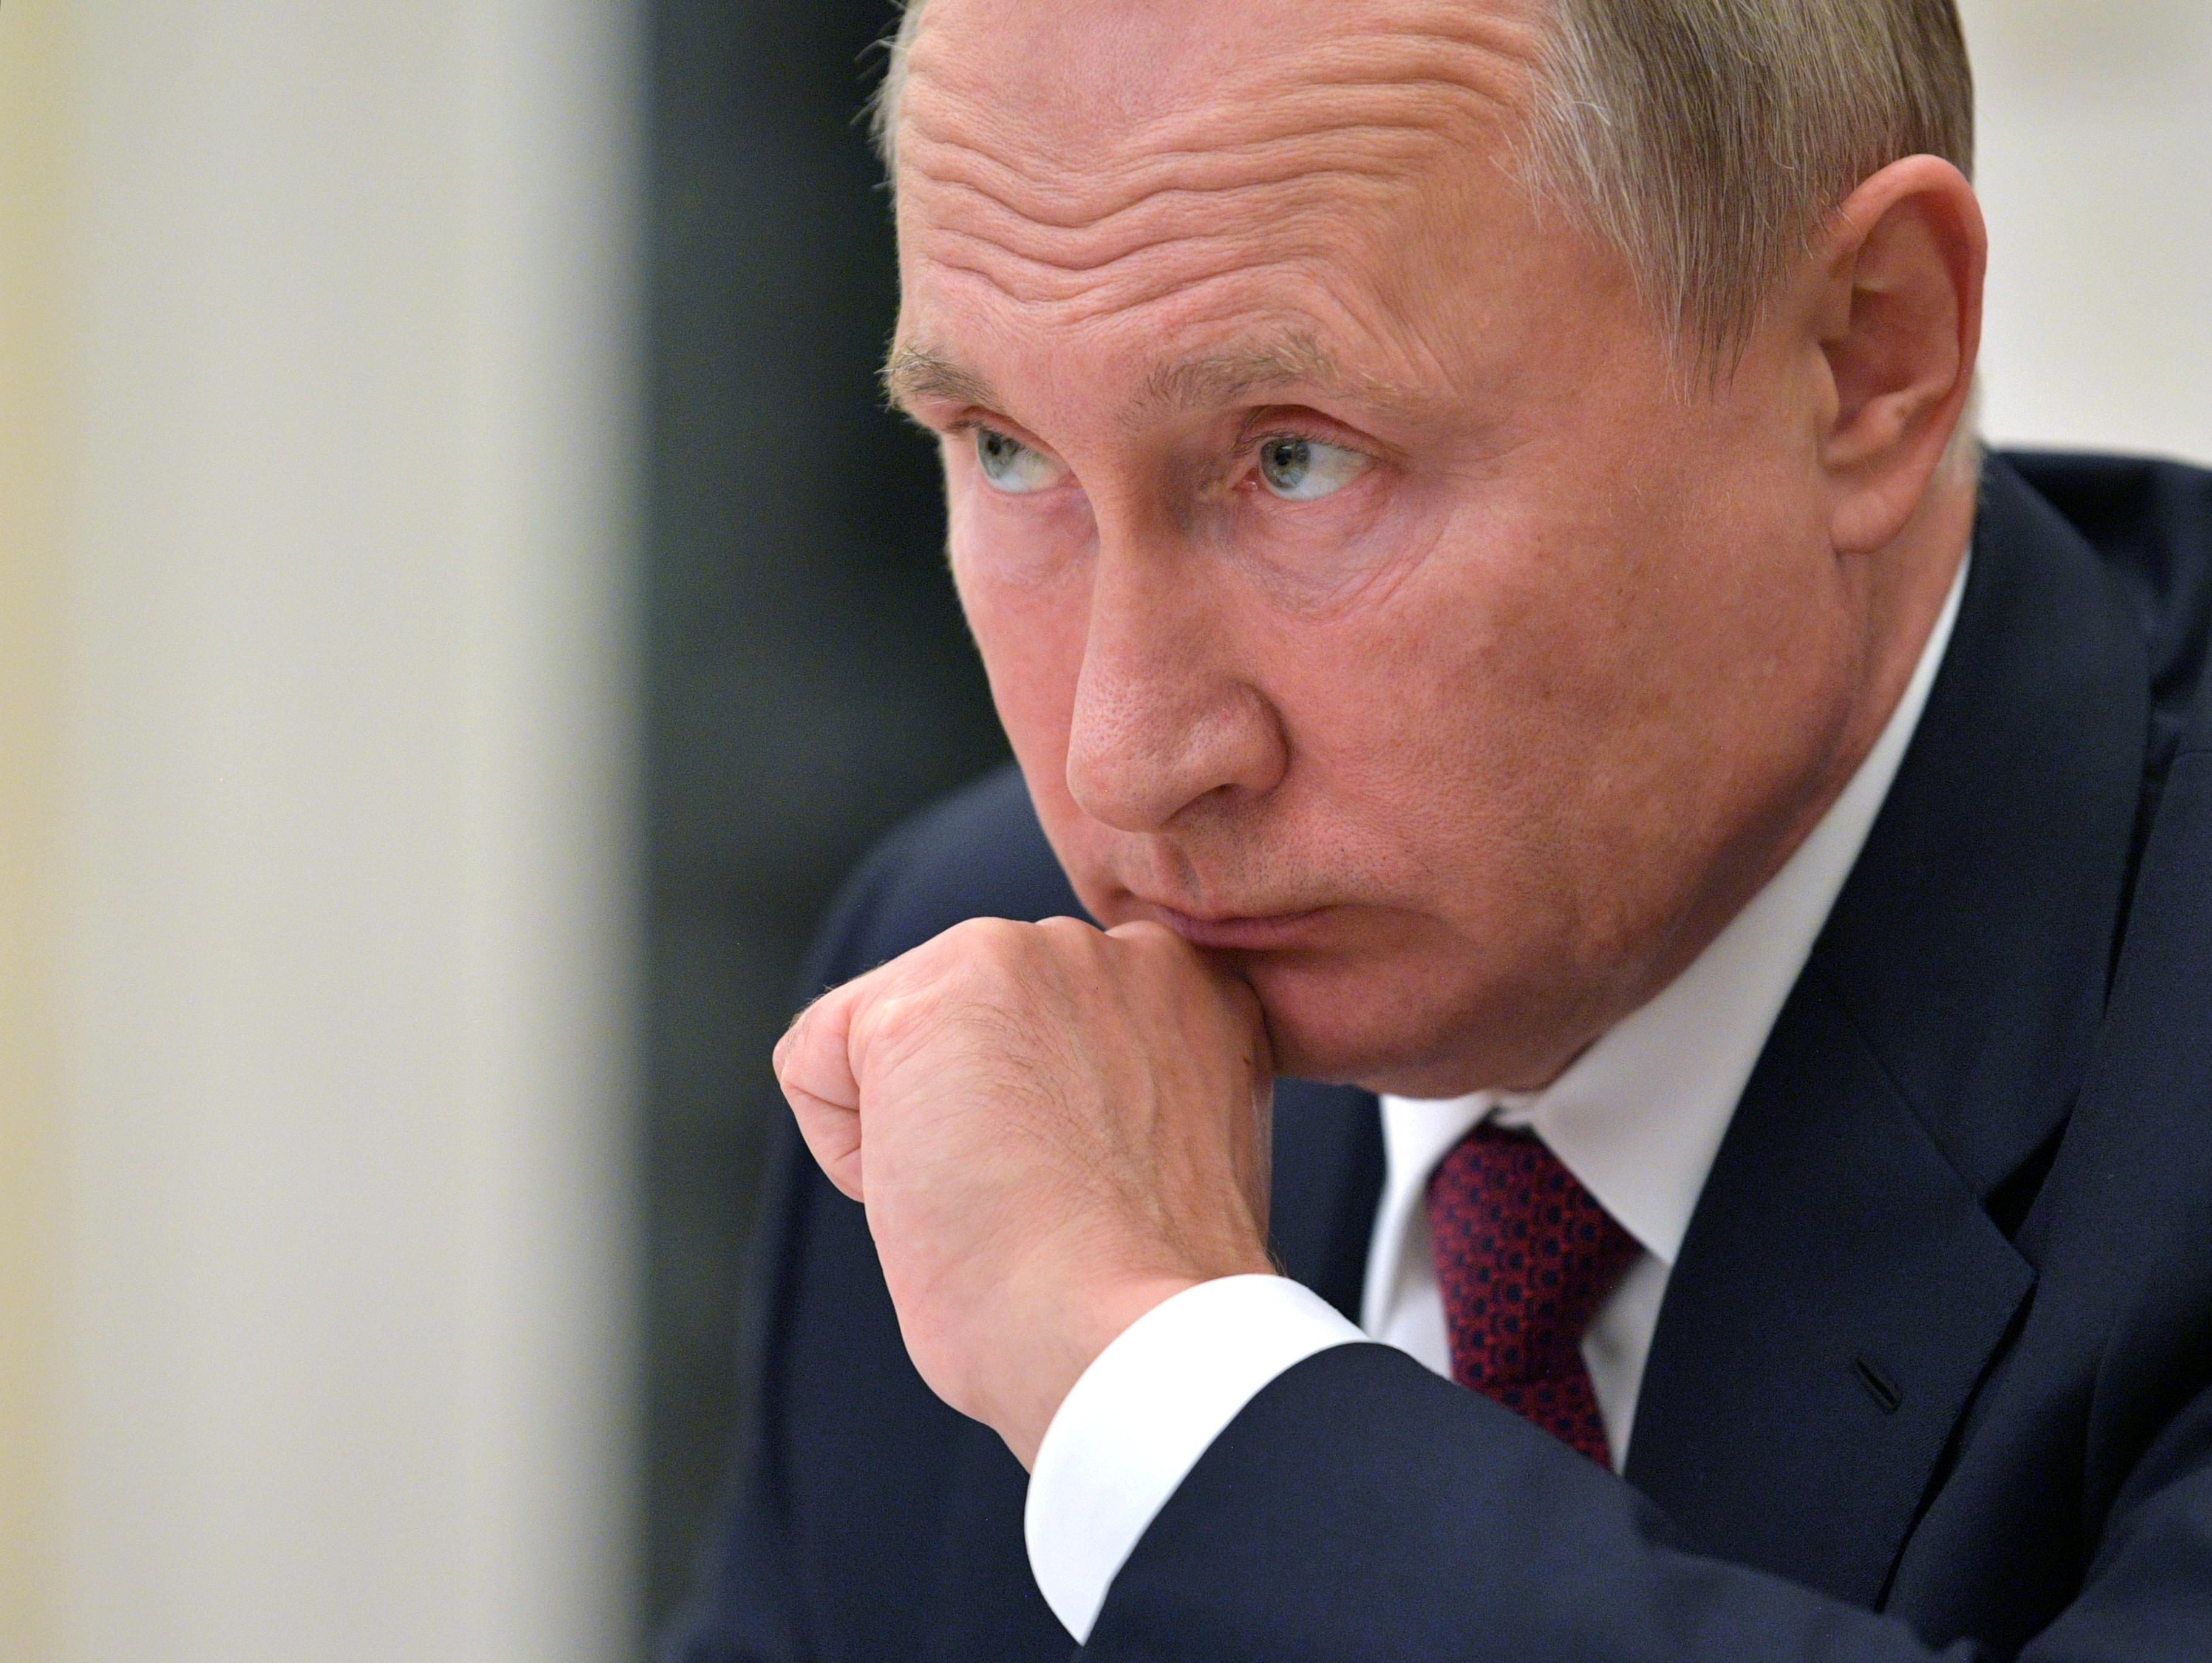 Russian minister to Putin: We must restore trust in courts, police